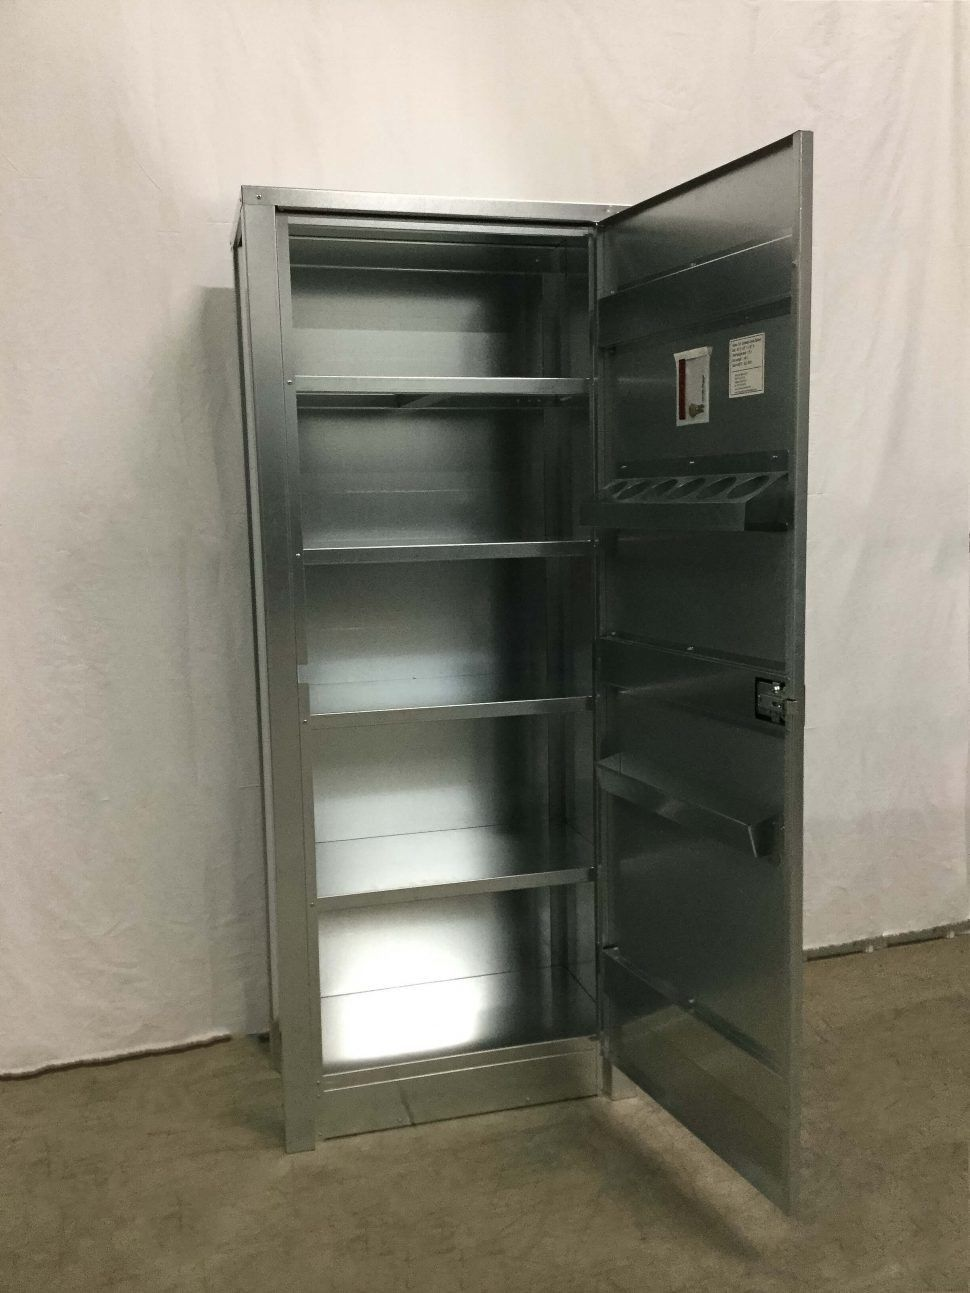 77 used industrial storage cabinets for sale kitchen nook lighting ideas check more at - Industrial Storage Cabinets